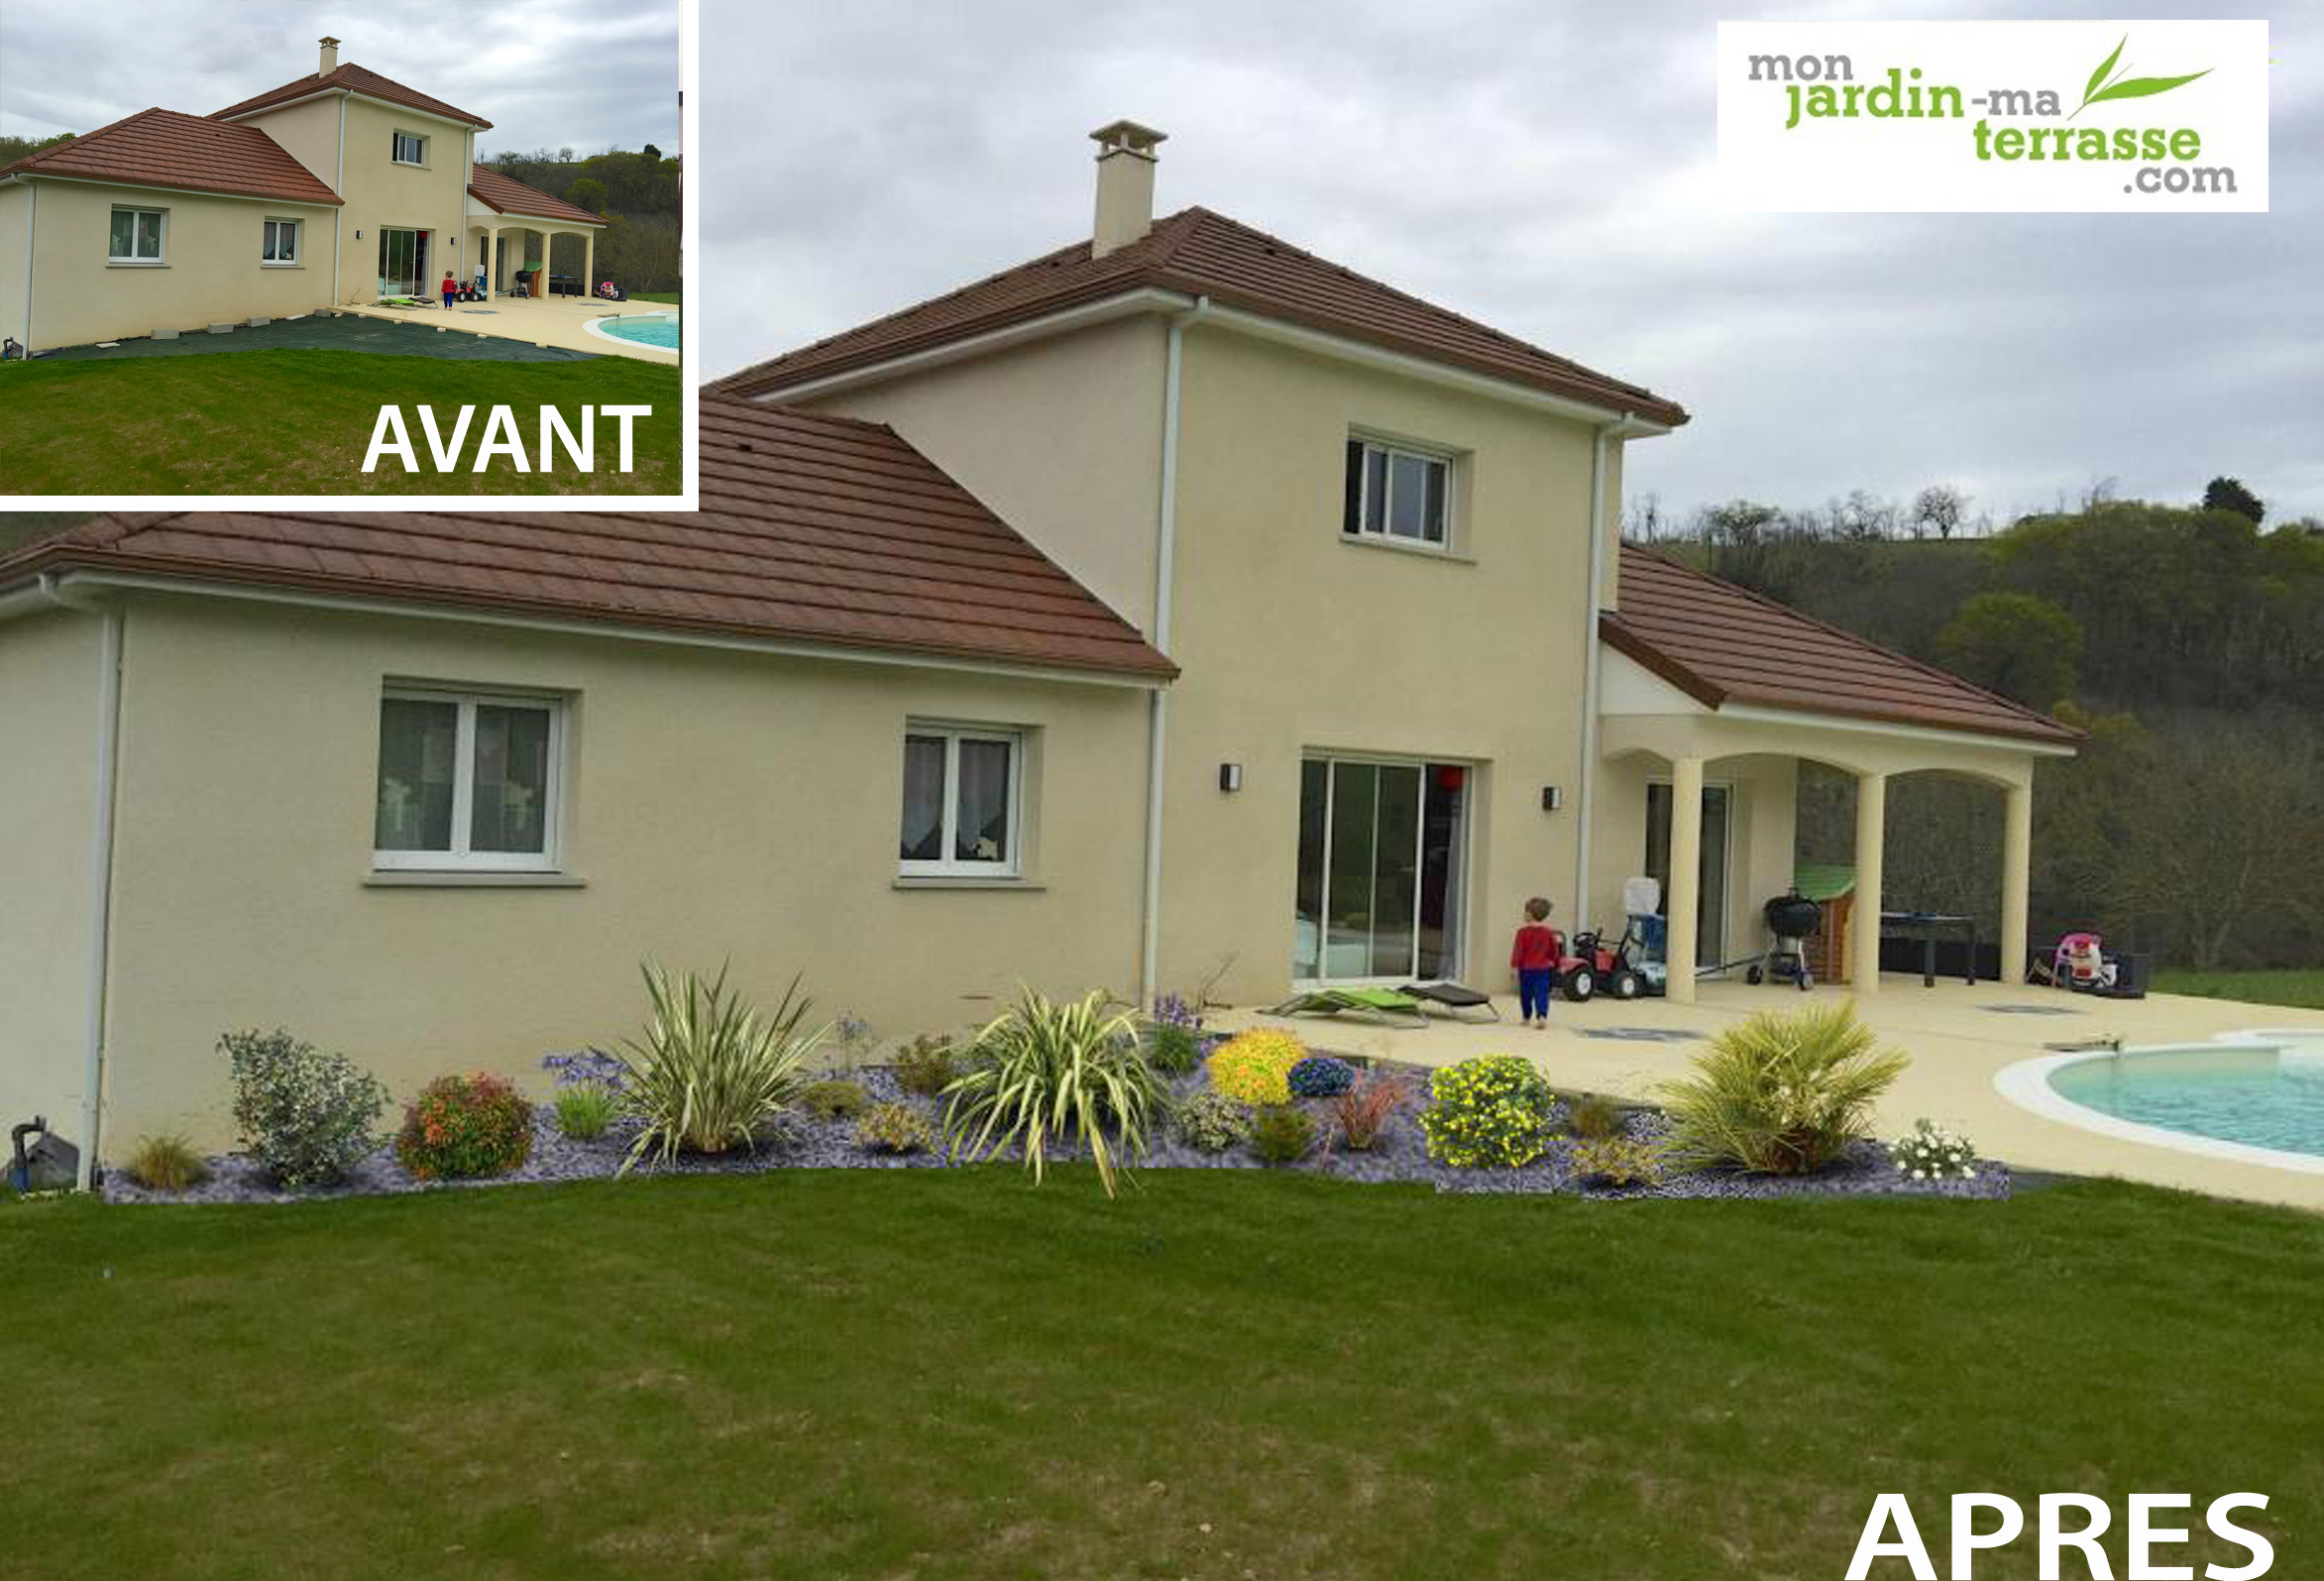 Am nagement ext rieur devant une maison monjardin for Amenagement de jardin exterieur